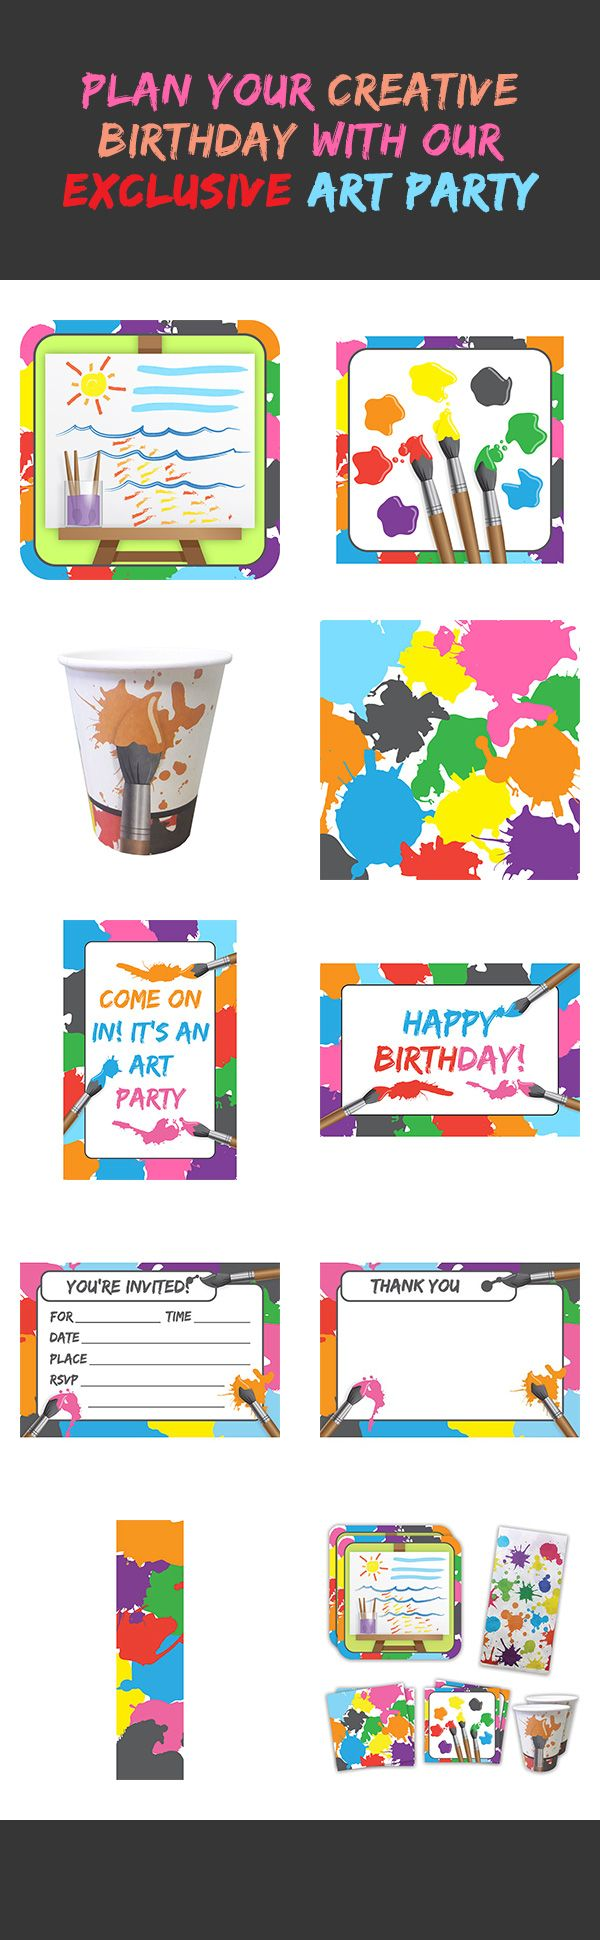 Create a party masterpiece with our newest exclusive Art Party line! This highly-popular theme includes tableware, party favors, decorations and more. Plan your party here: http://www.discountpartysupplies.com/girl-party-supplies/art-party-supplies?utm_source=Pinterest&utm_medium=Social&utm_content=art_party_party_supplies&utm_campaign=art_party_Promoted_Pin